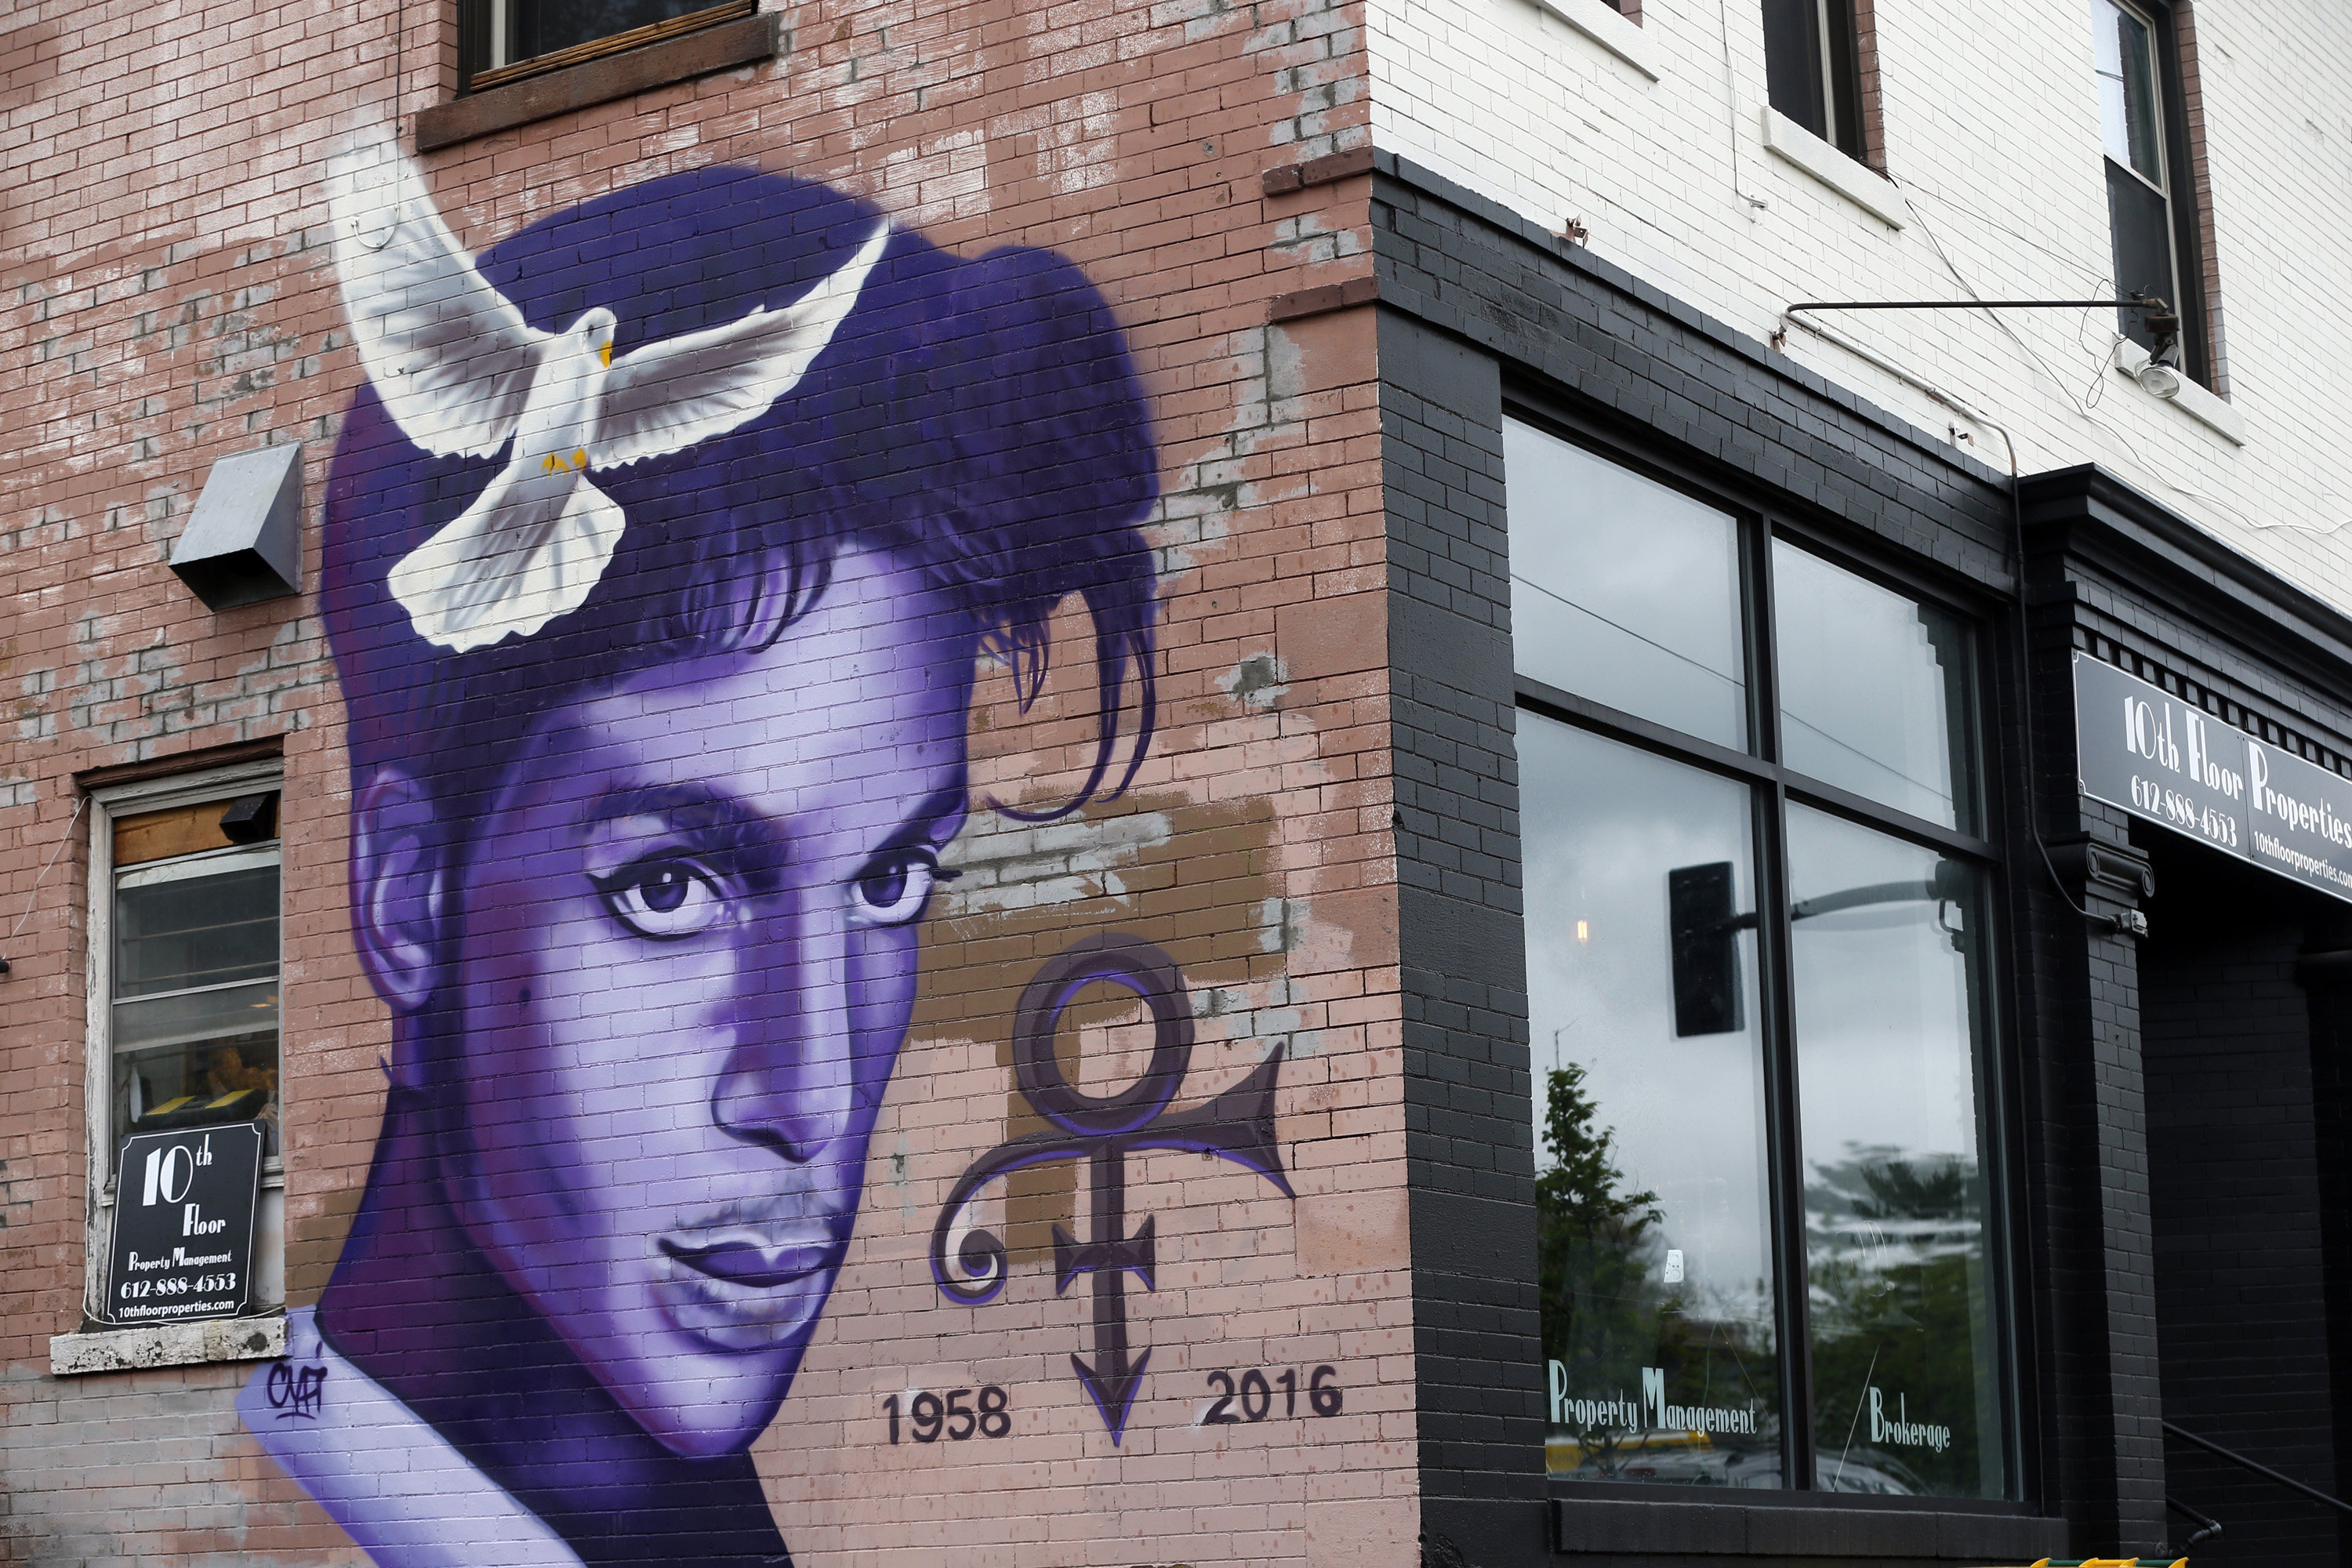 Making a Pilgrimage Along Prince's Purple Trail